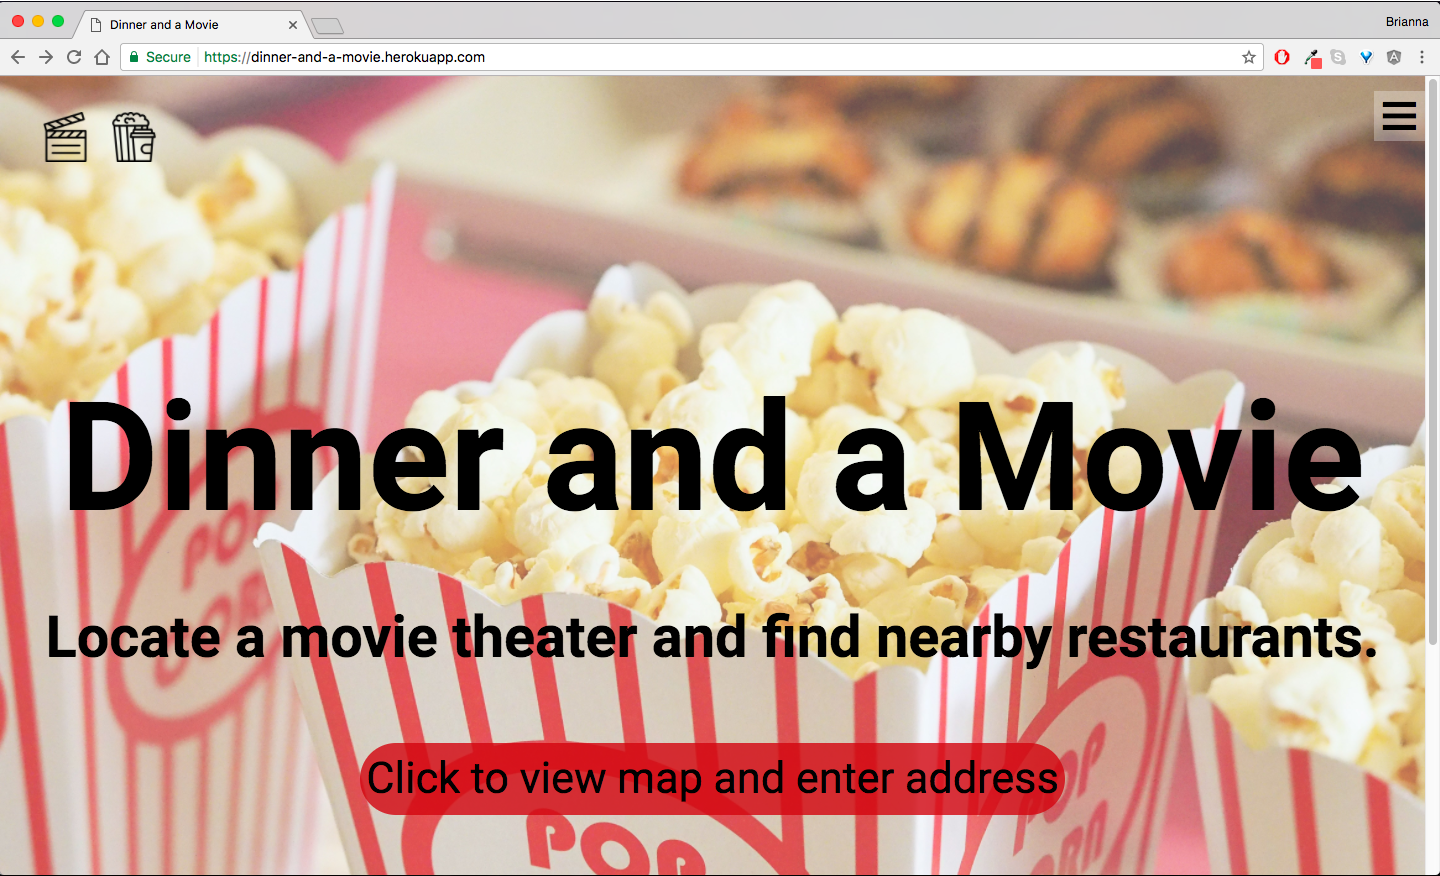 Image of Dinner and a Movie App